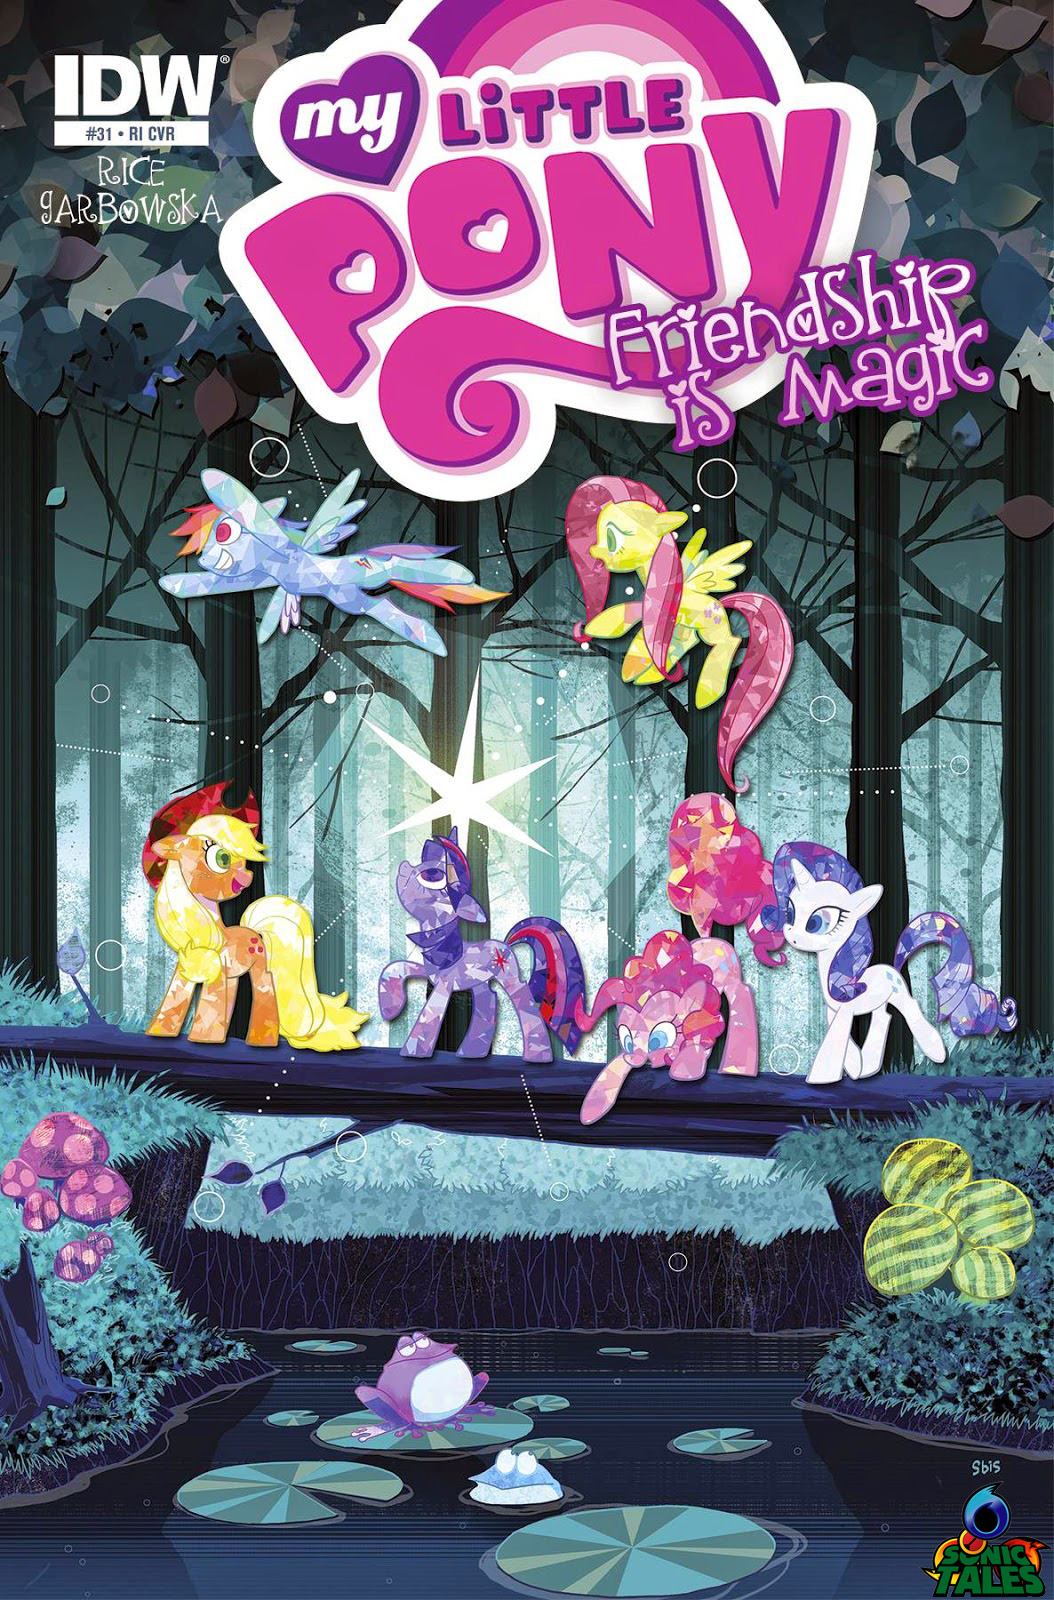 Friendship Tales (My Little Pony) 4 Books in 1: Meet the Ponies of Ponyville, He